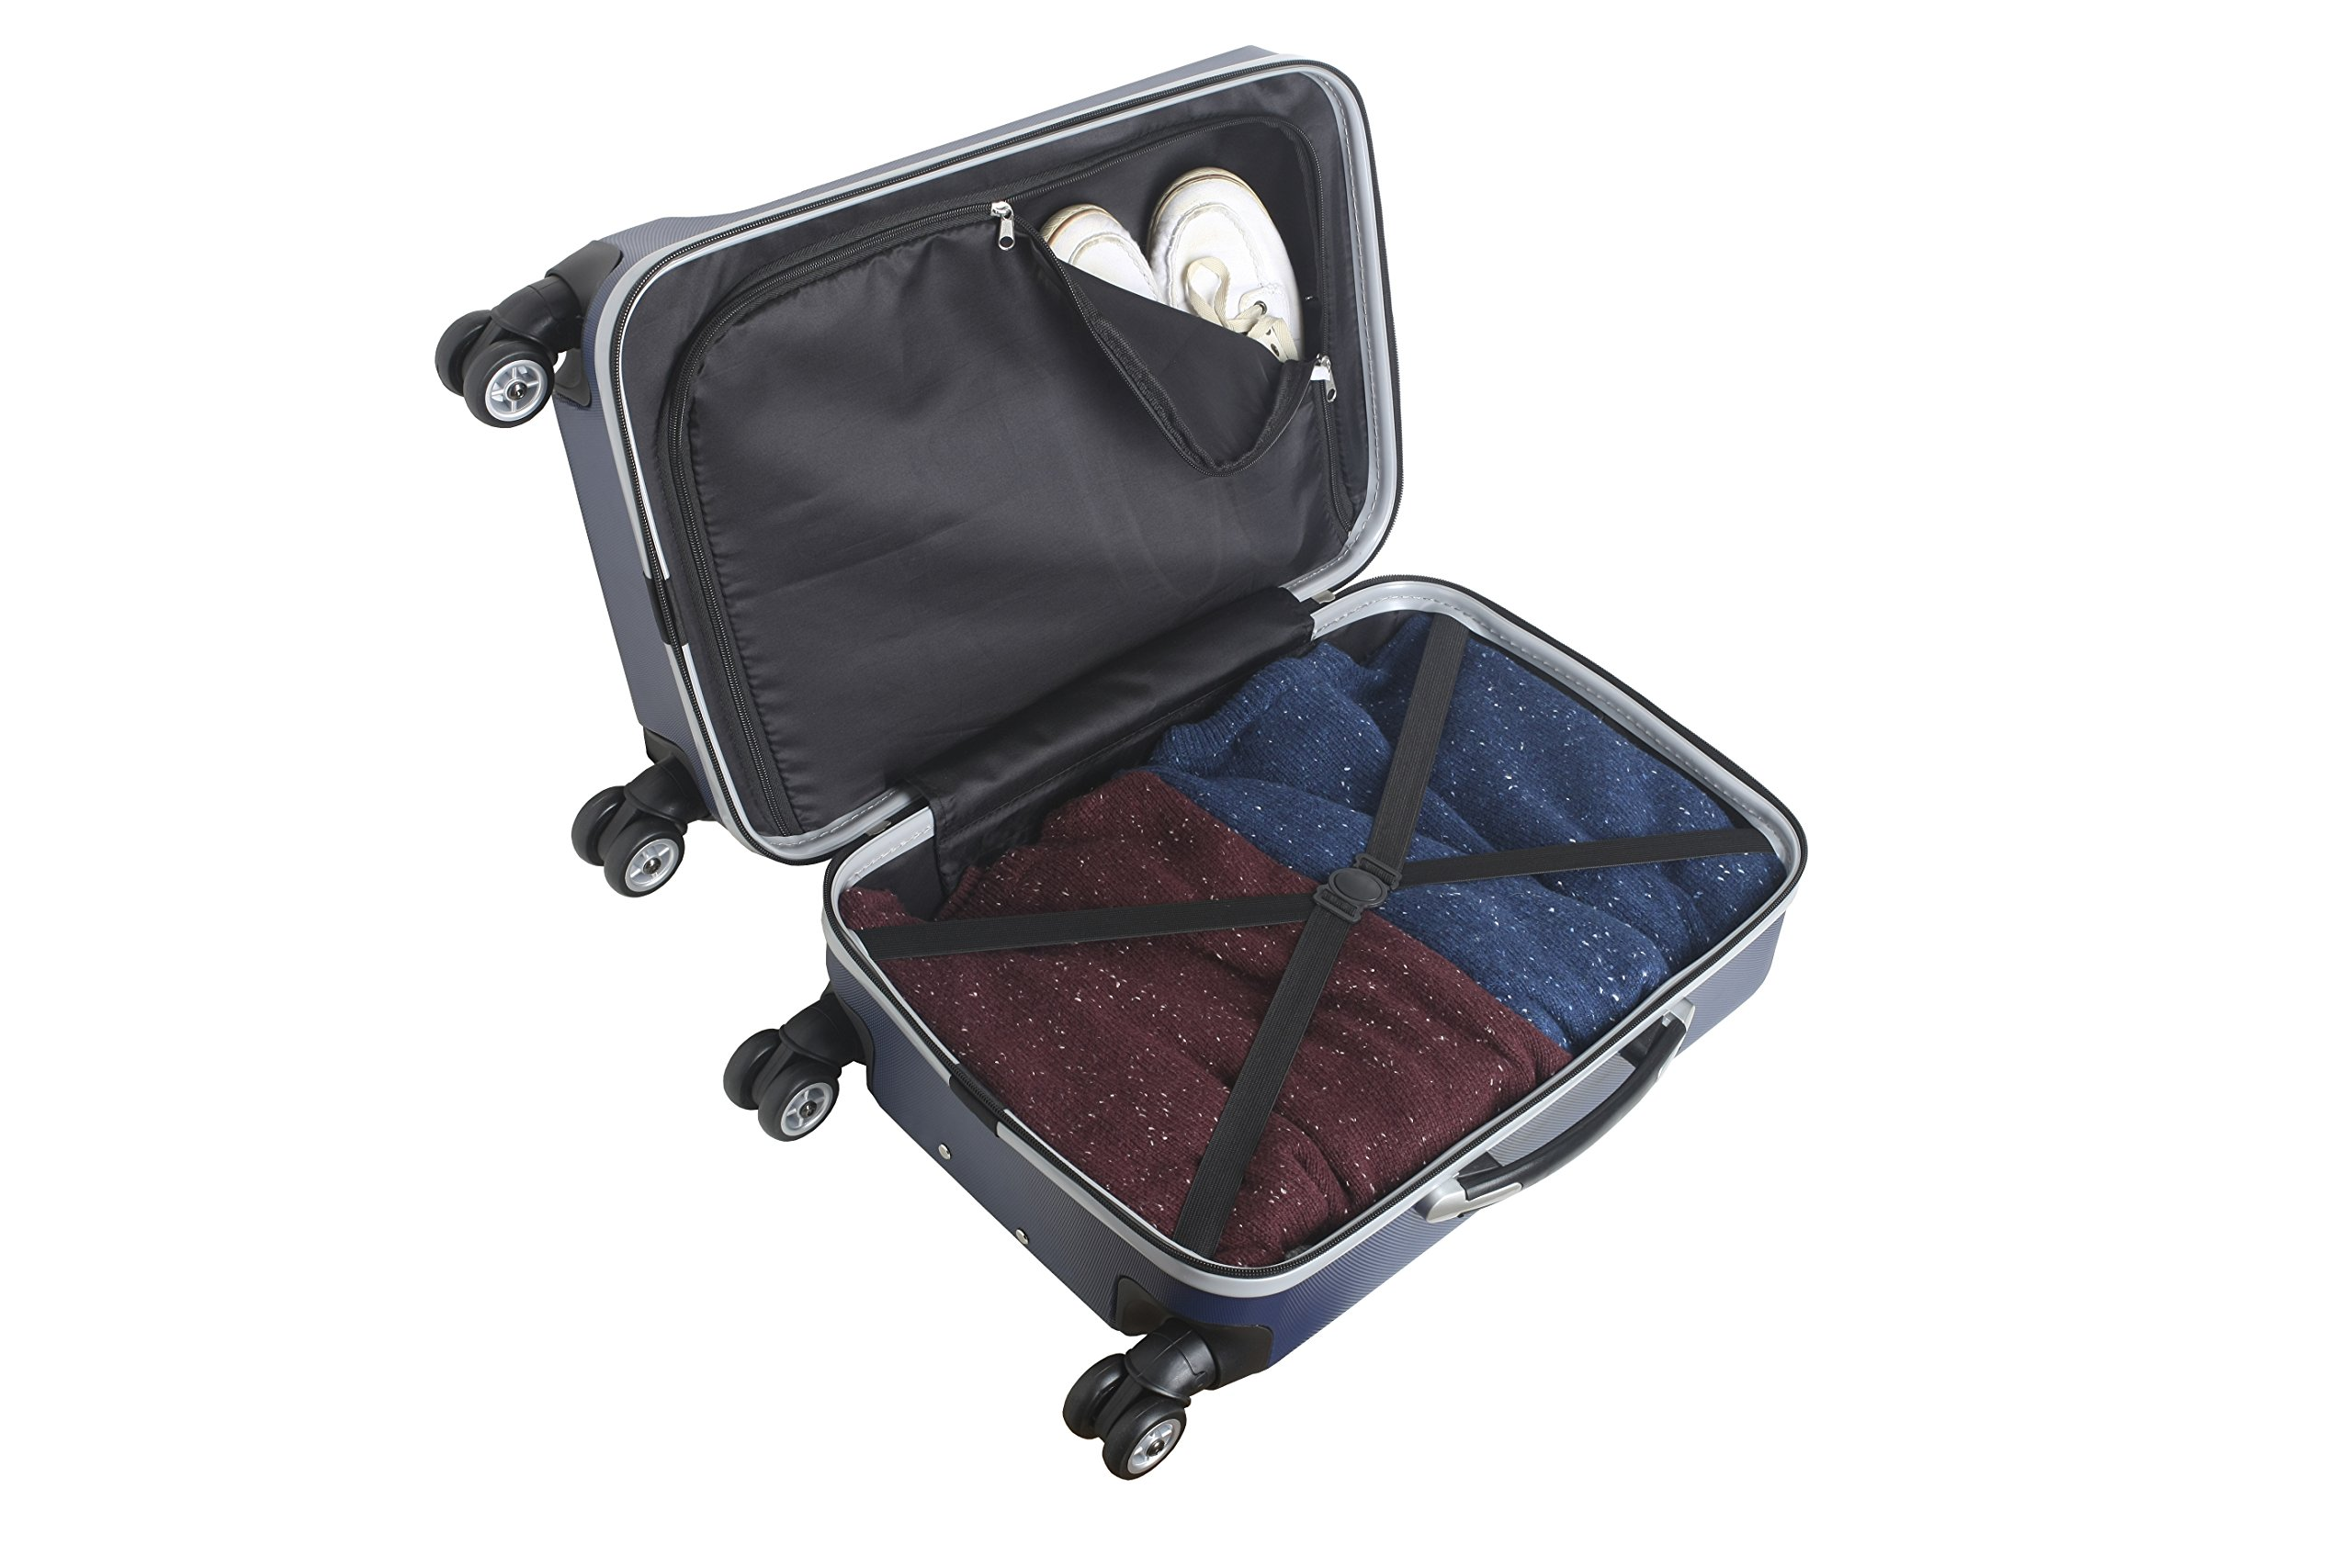 Denco NFL Indianapolis Colts Carry-On Hardcase Luggage Spinner, Navy by Denco (Image #5)